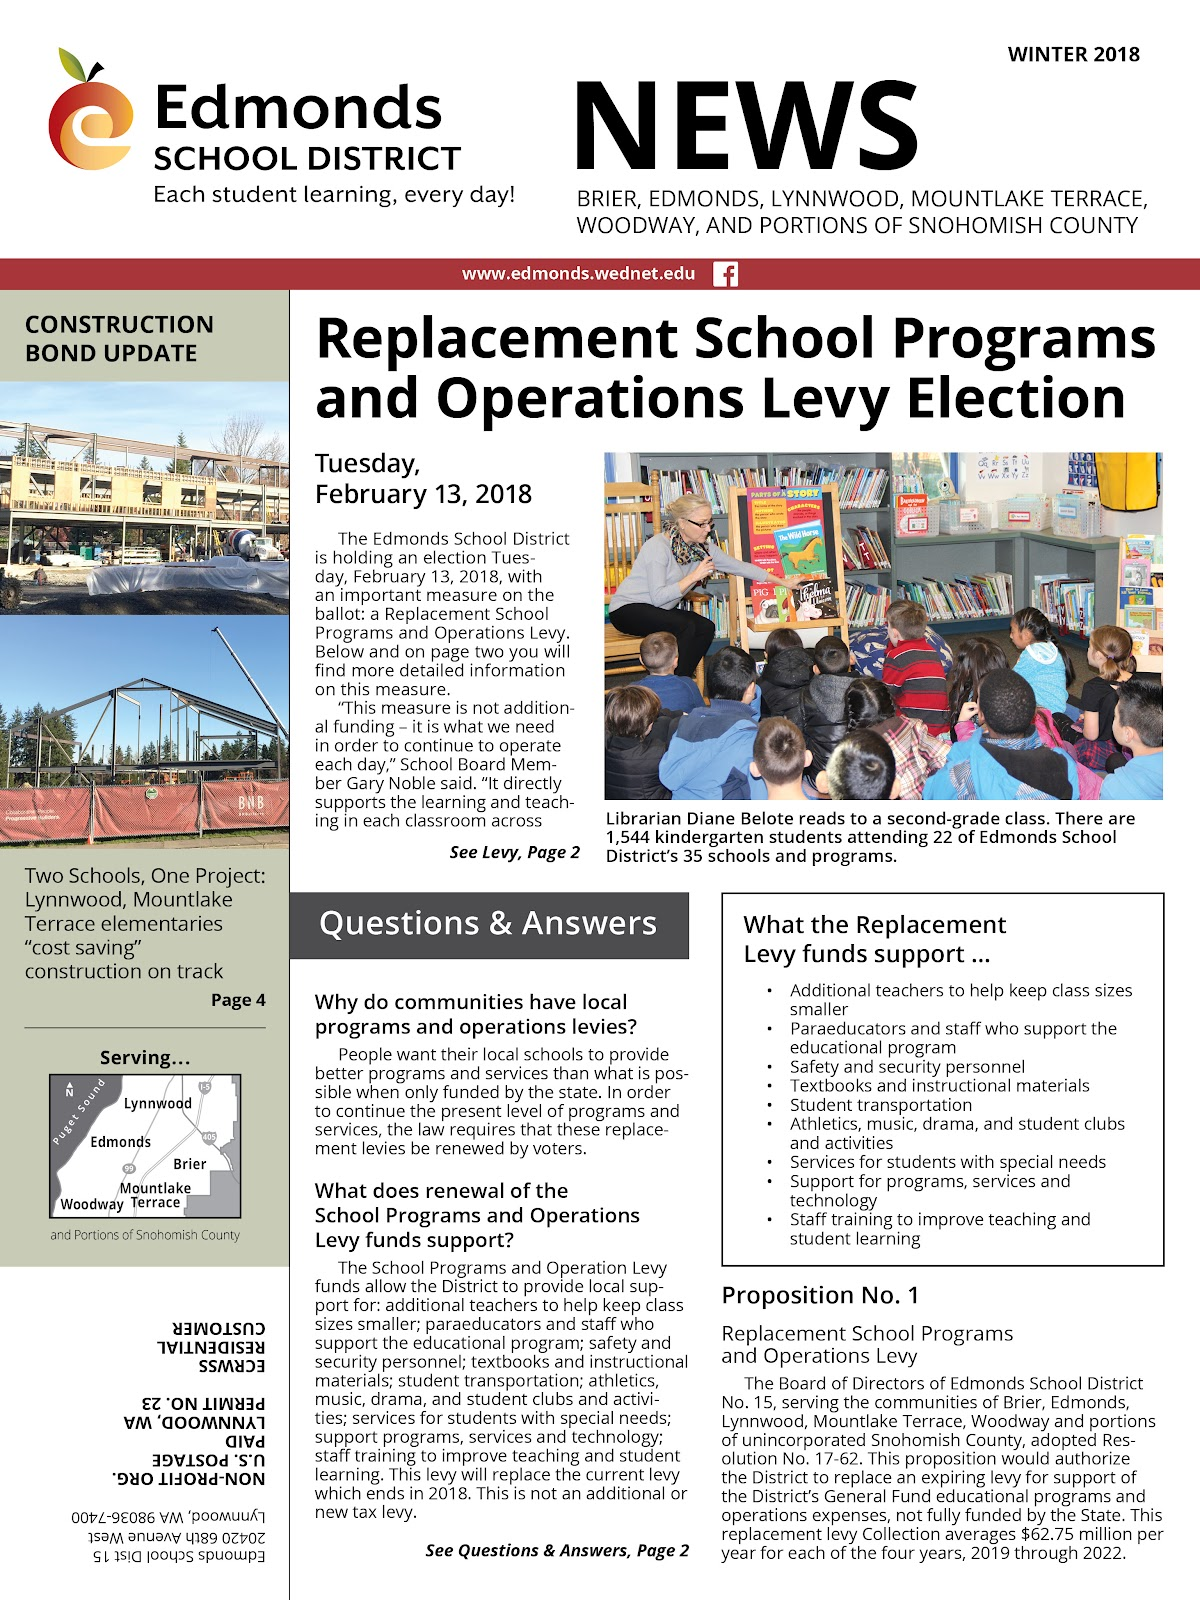 Winter 2018 District Newsletter cover